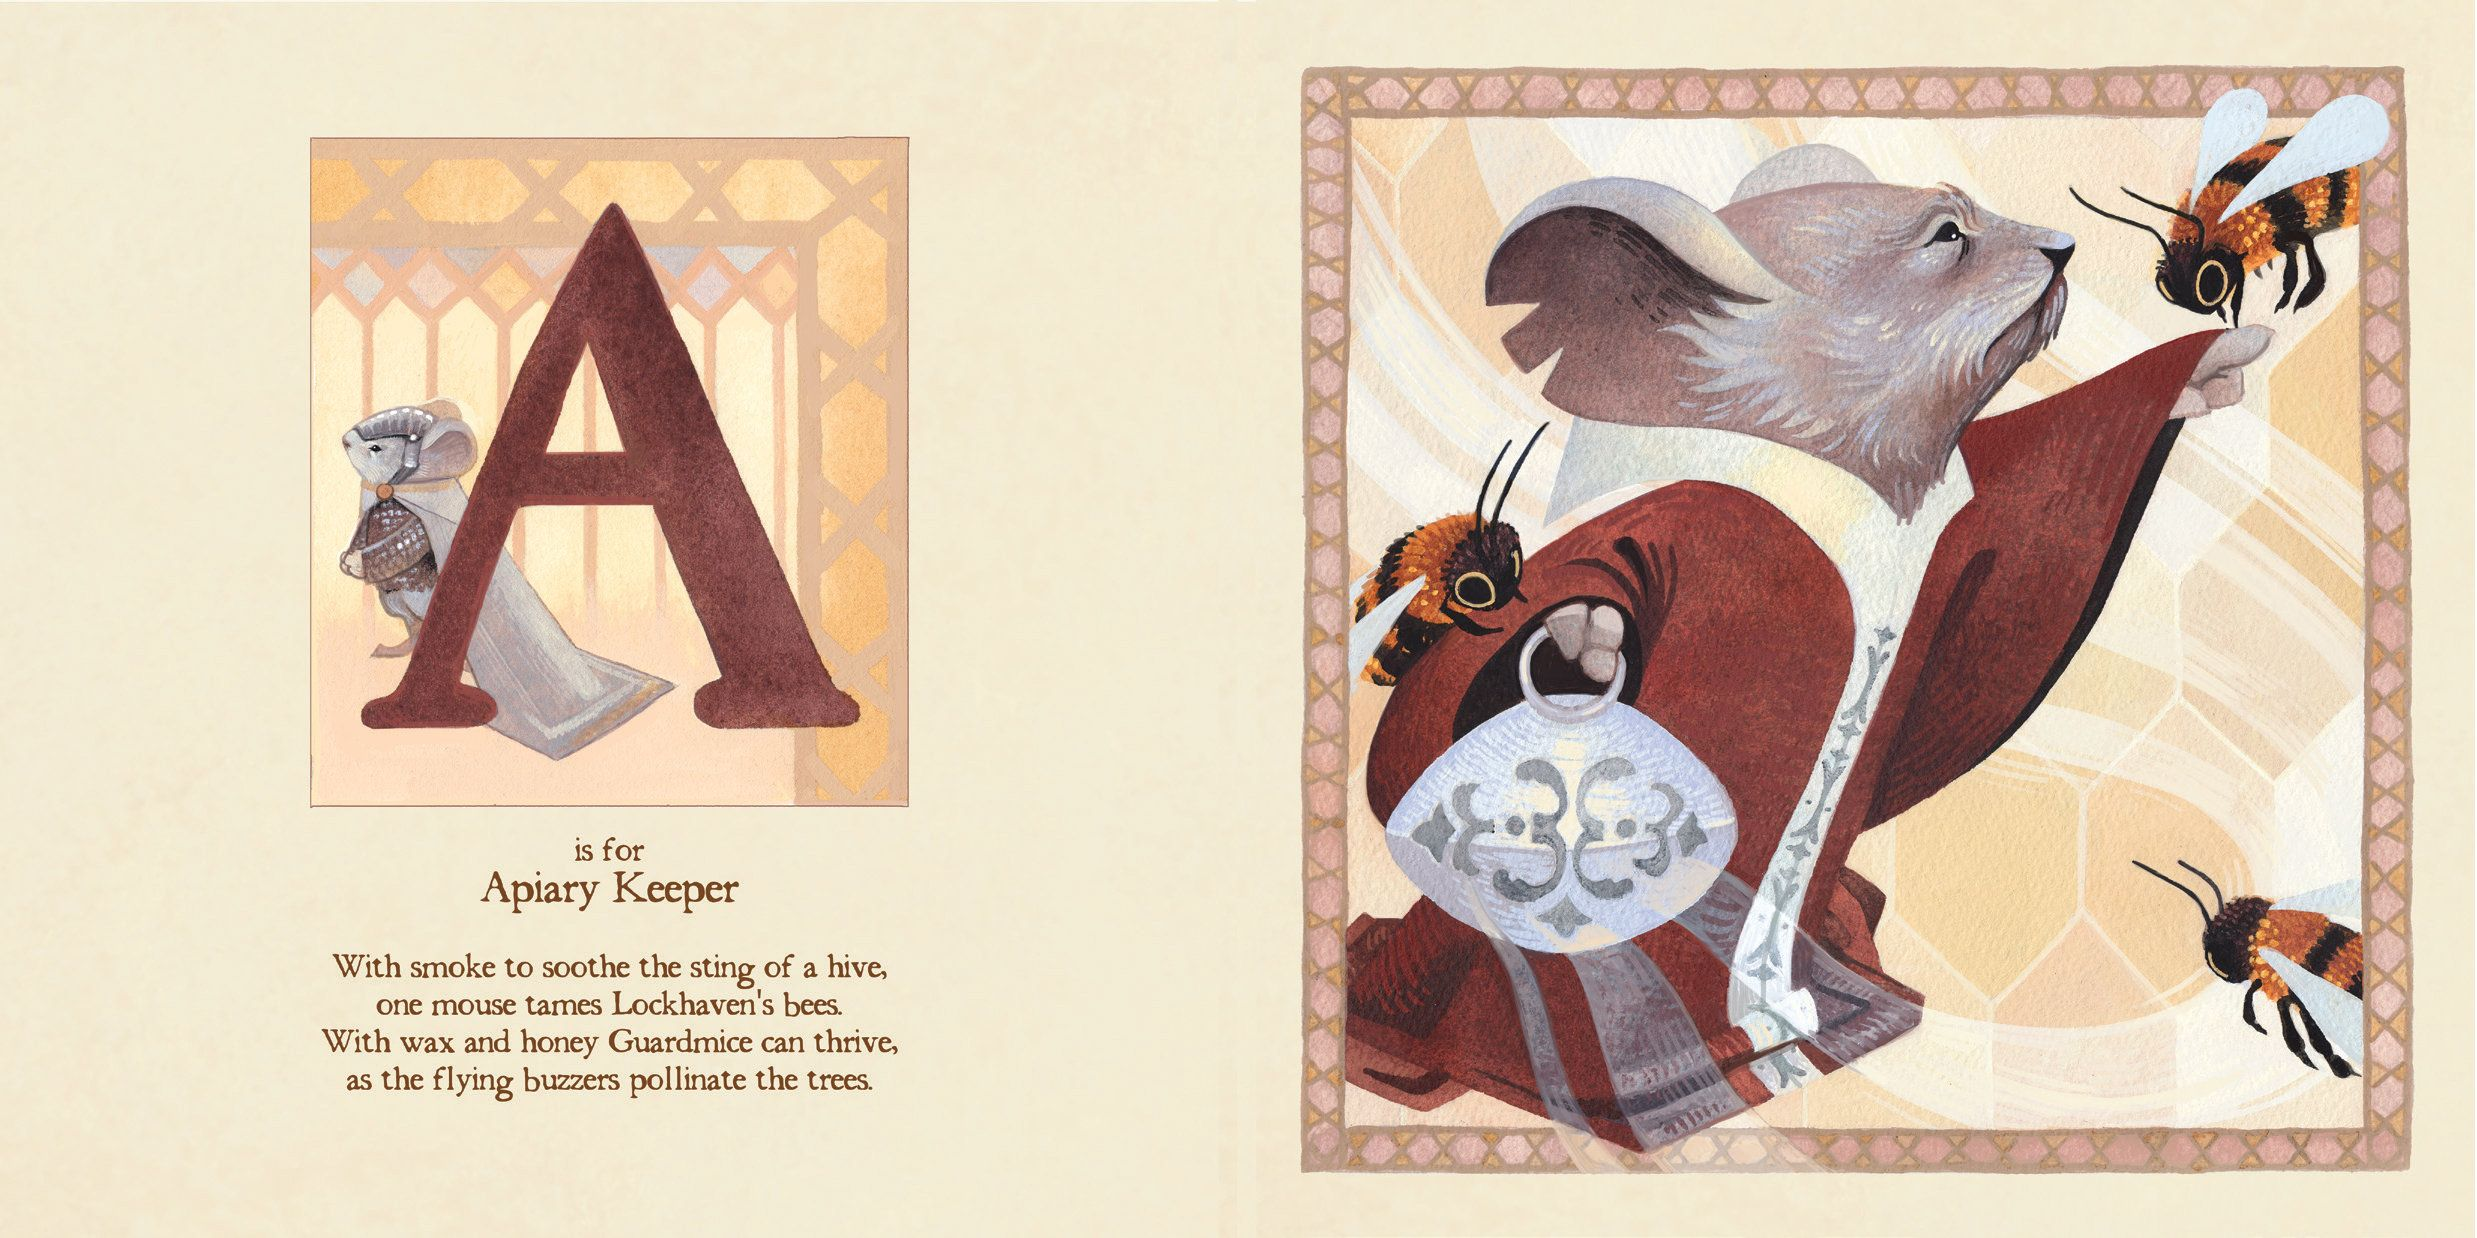 MOUSE GUARD ALPHABET BOOK, a new all-ages hardcover publication fromMouse Guard creator David Petersen and illustrator Serena Malyon set to debut in September. Learn the ABCs in the world of David …